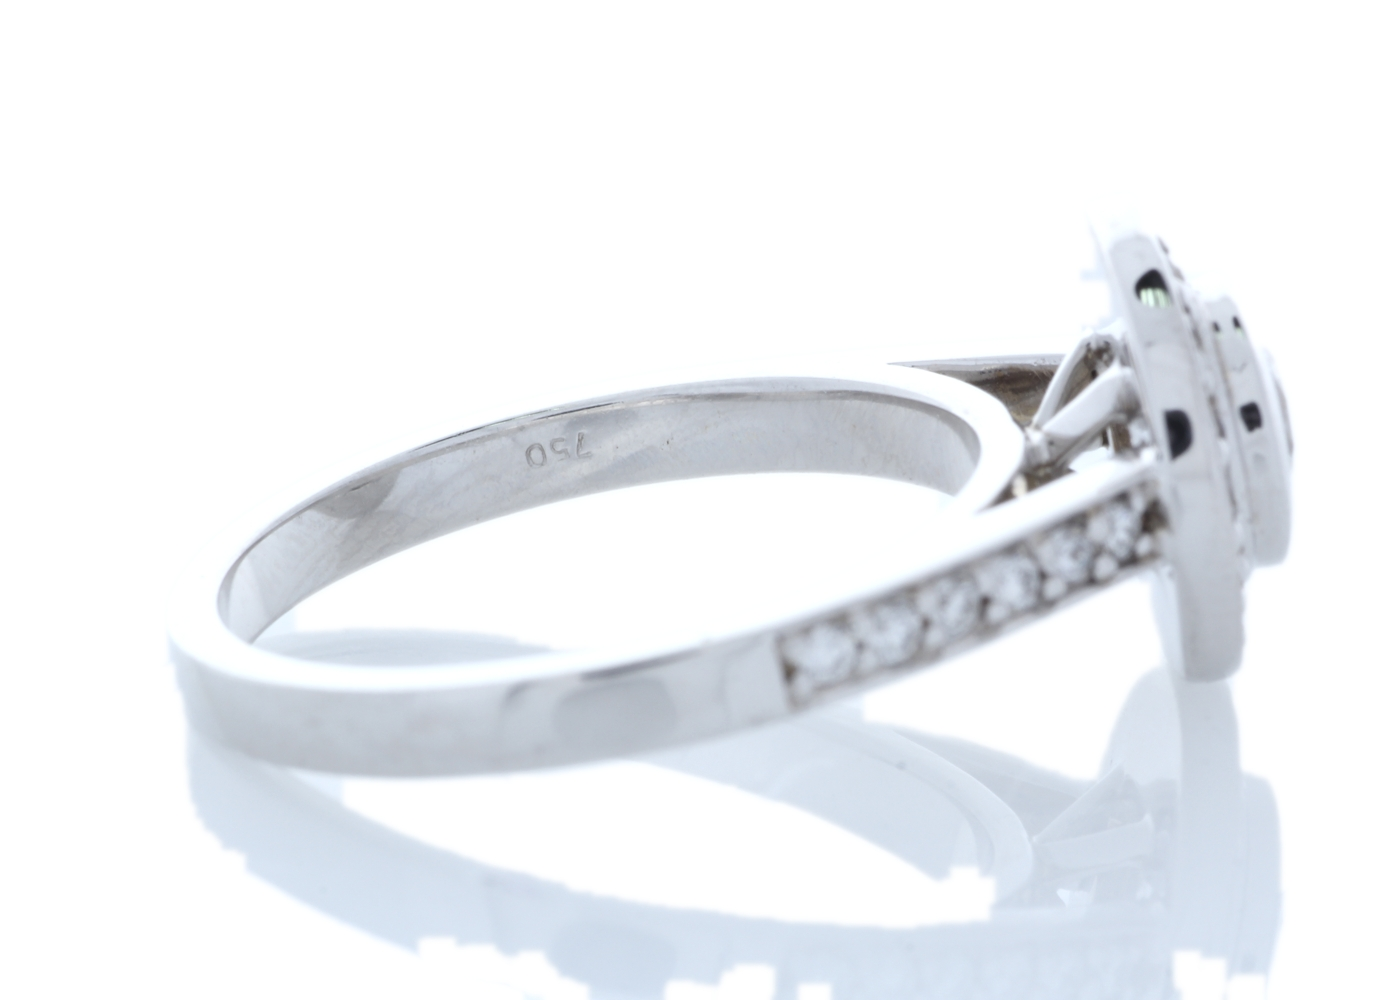 18ct White Gold Single Stone With Halo Setting Ring (0.50) 1.00 Carats - Image 2 of 6